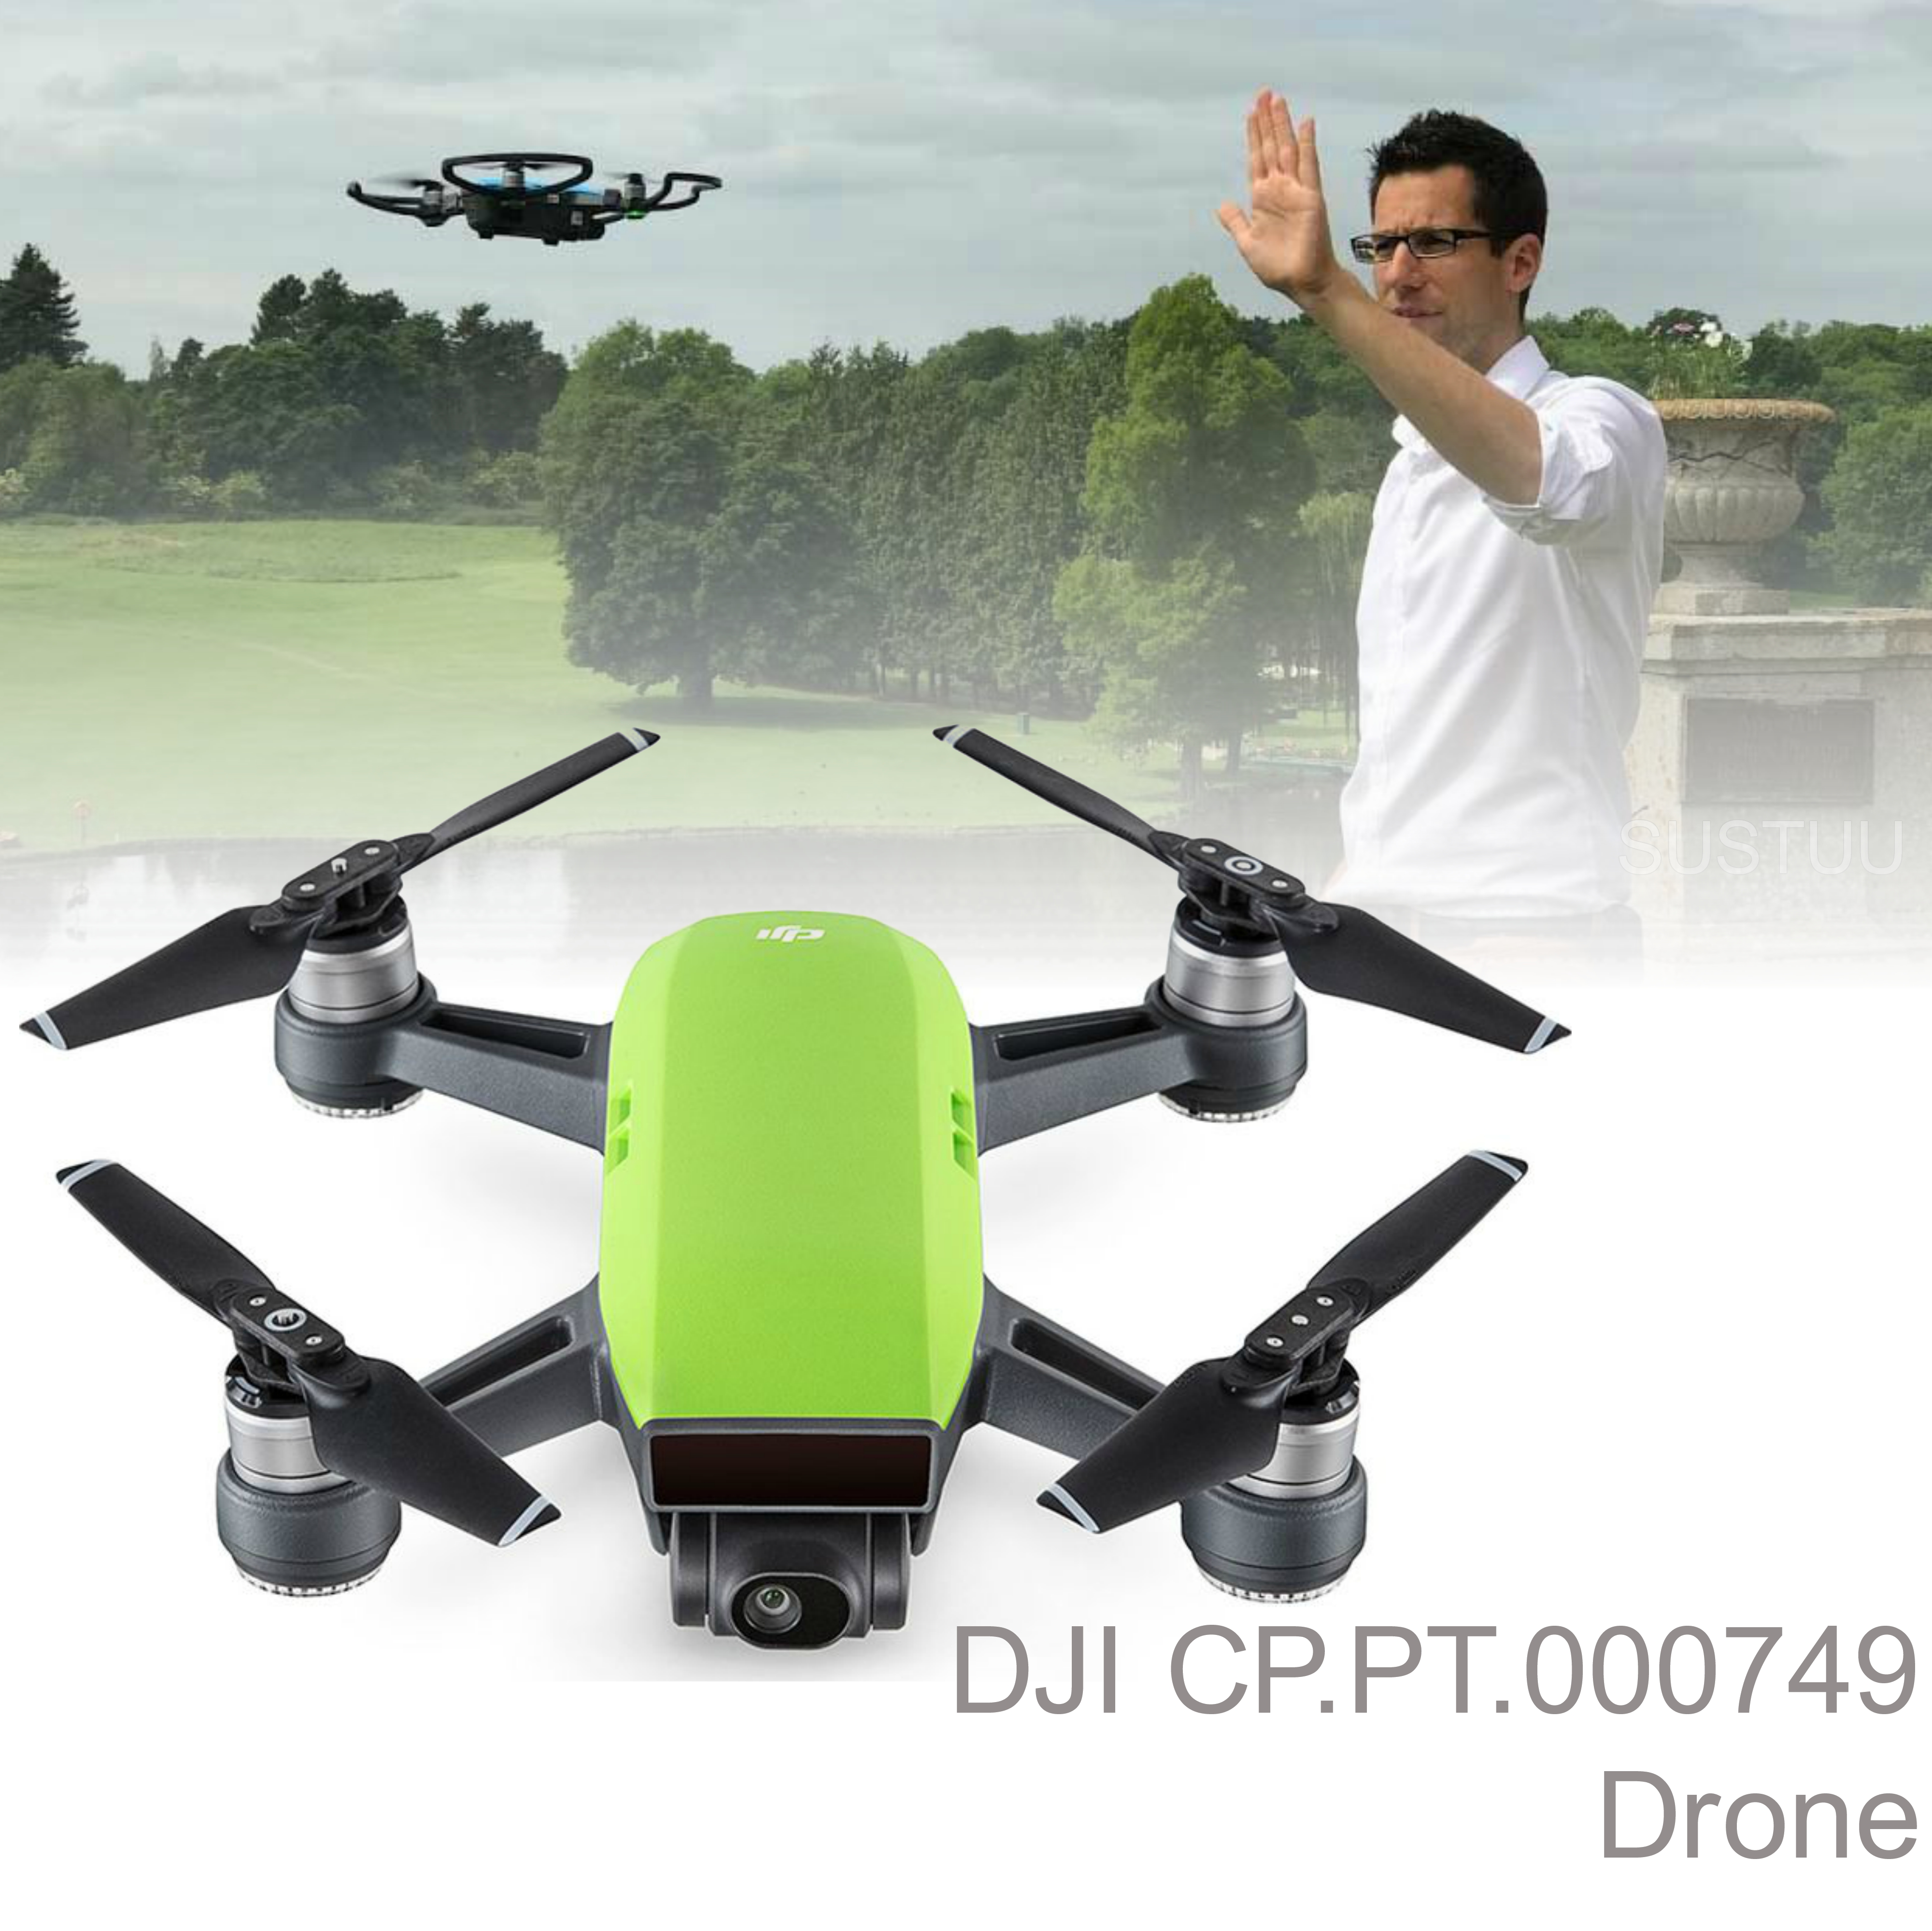 DJI CP.PT.000749 Spark|Open Sky Drone|with Automatic Edit Filters|Meadow Green